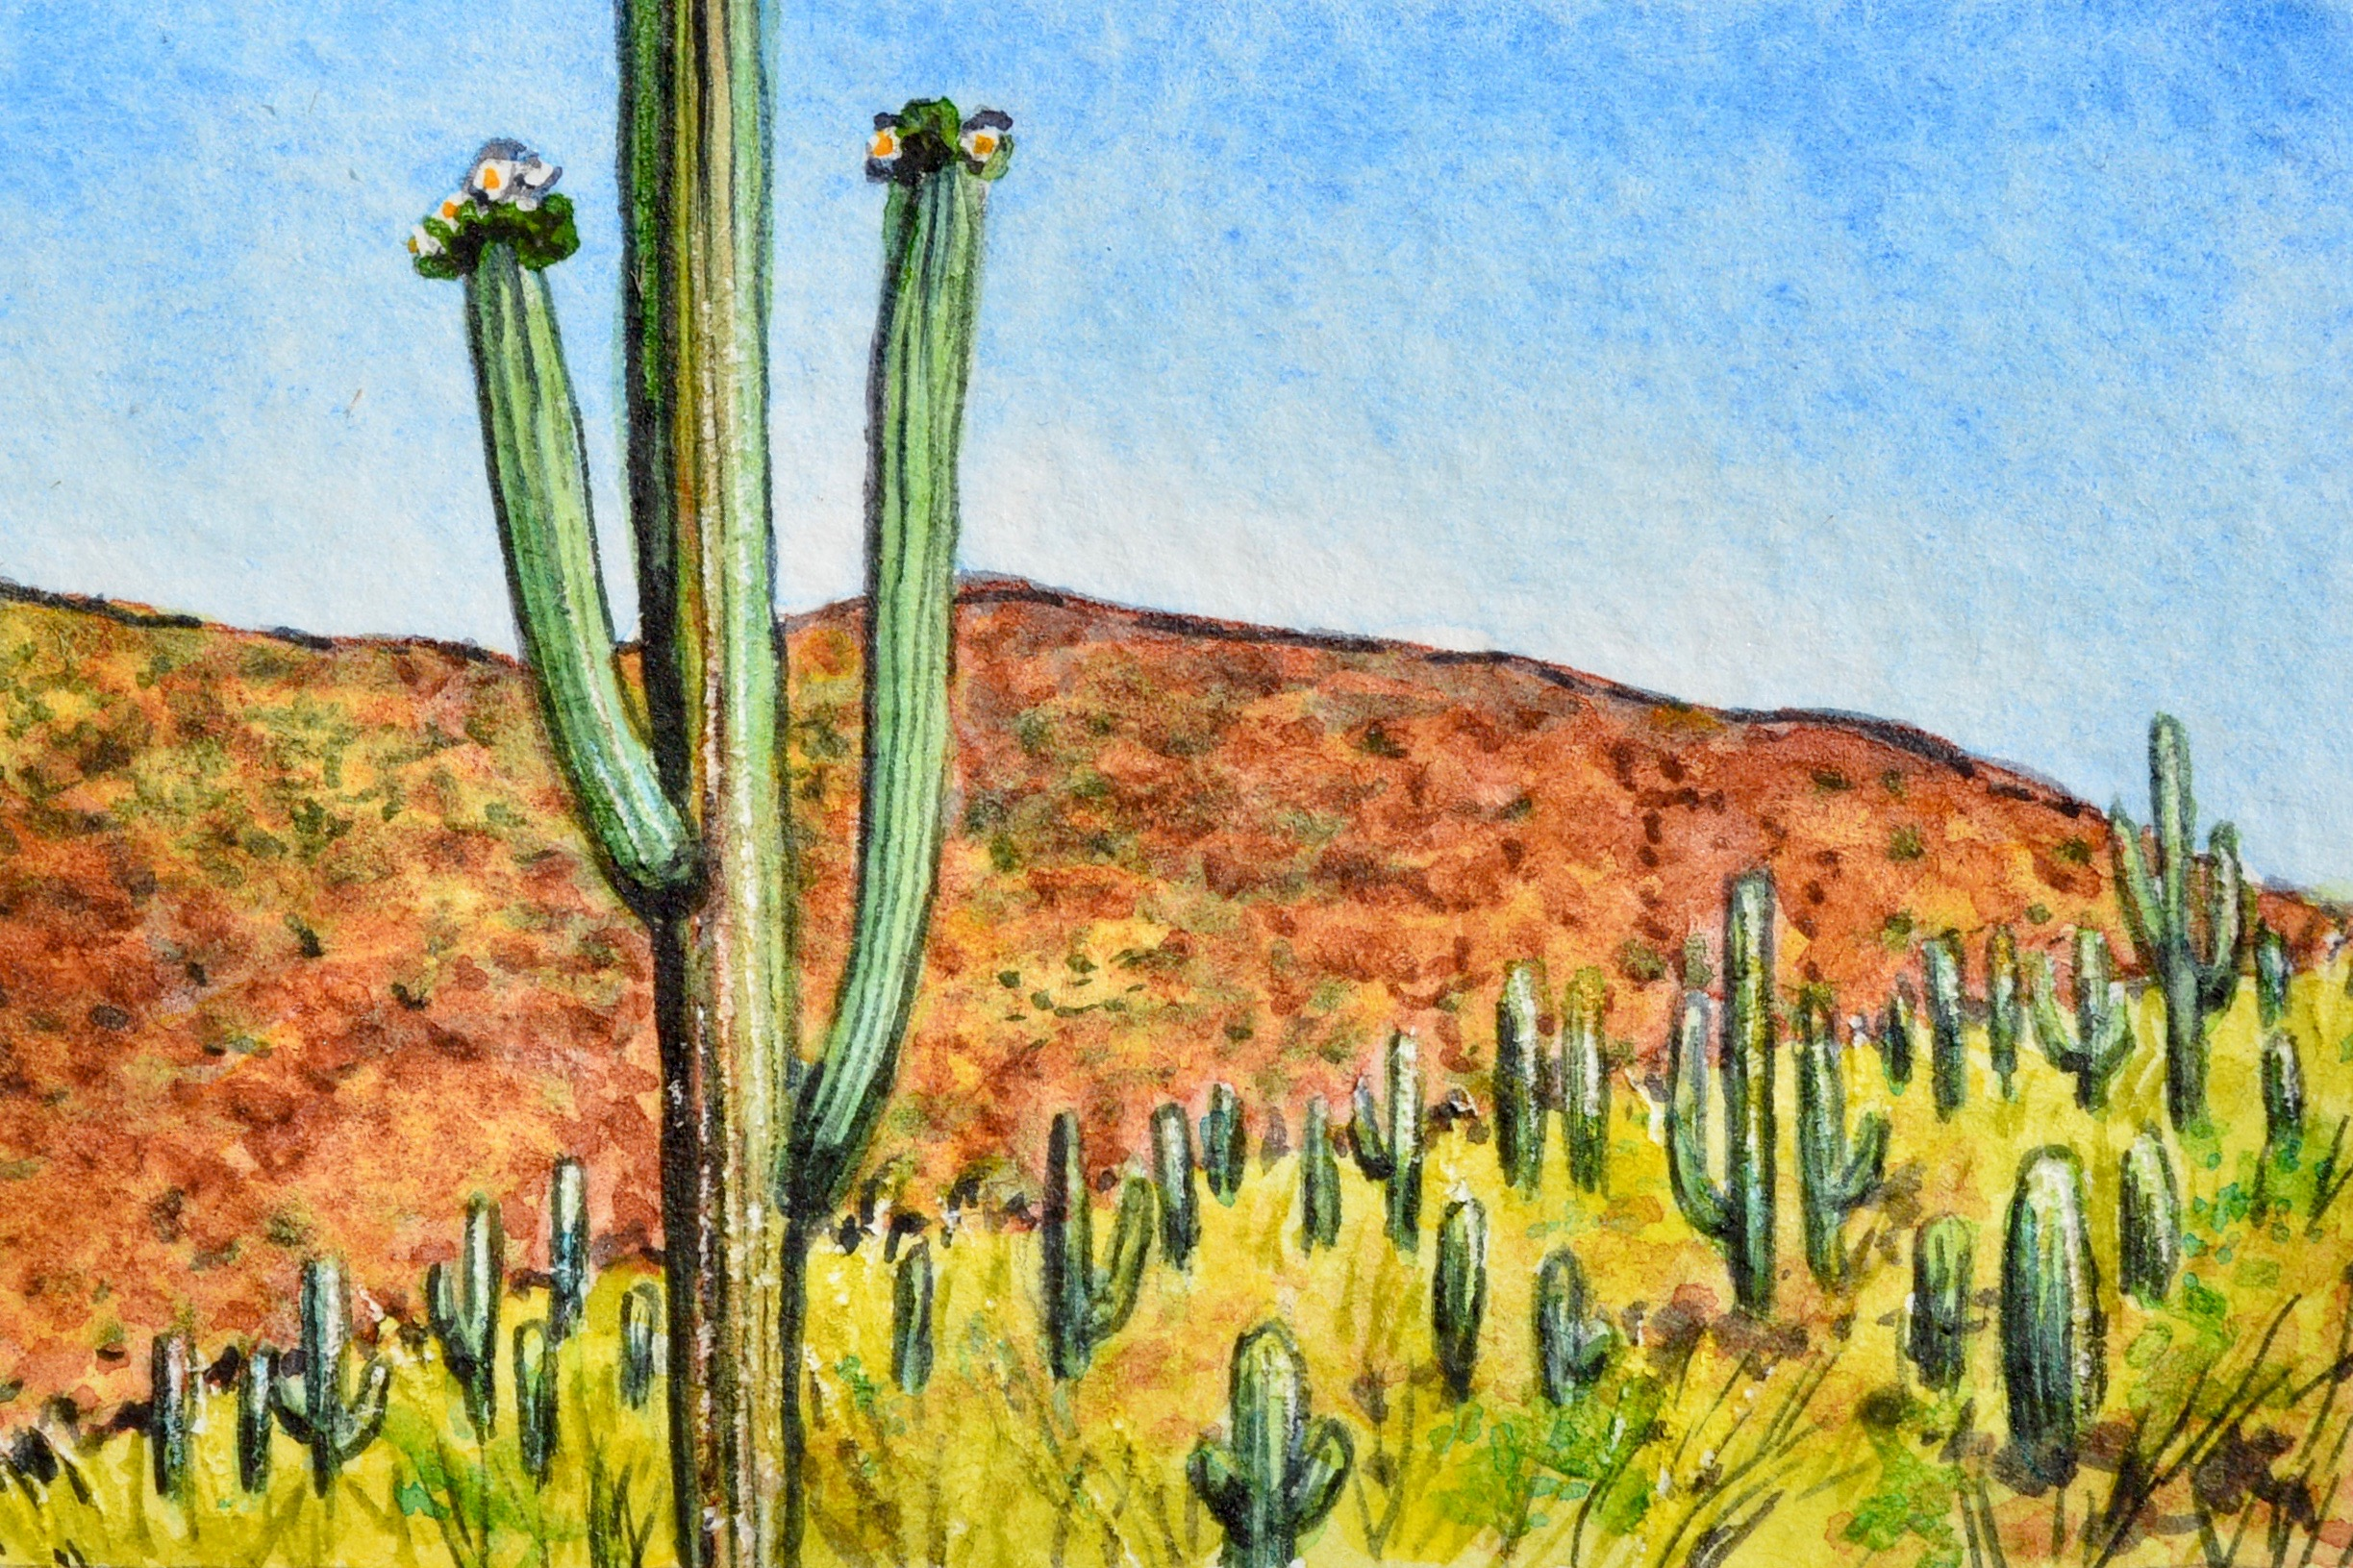 """Mesa, Arizona: 5/12/19, 10:06:30"" 3x2"" watercolor on 140 lb. watercolor paper For sale as of this blog posting -  visit my online shop  to purchase."